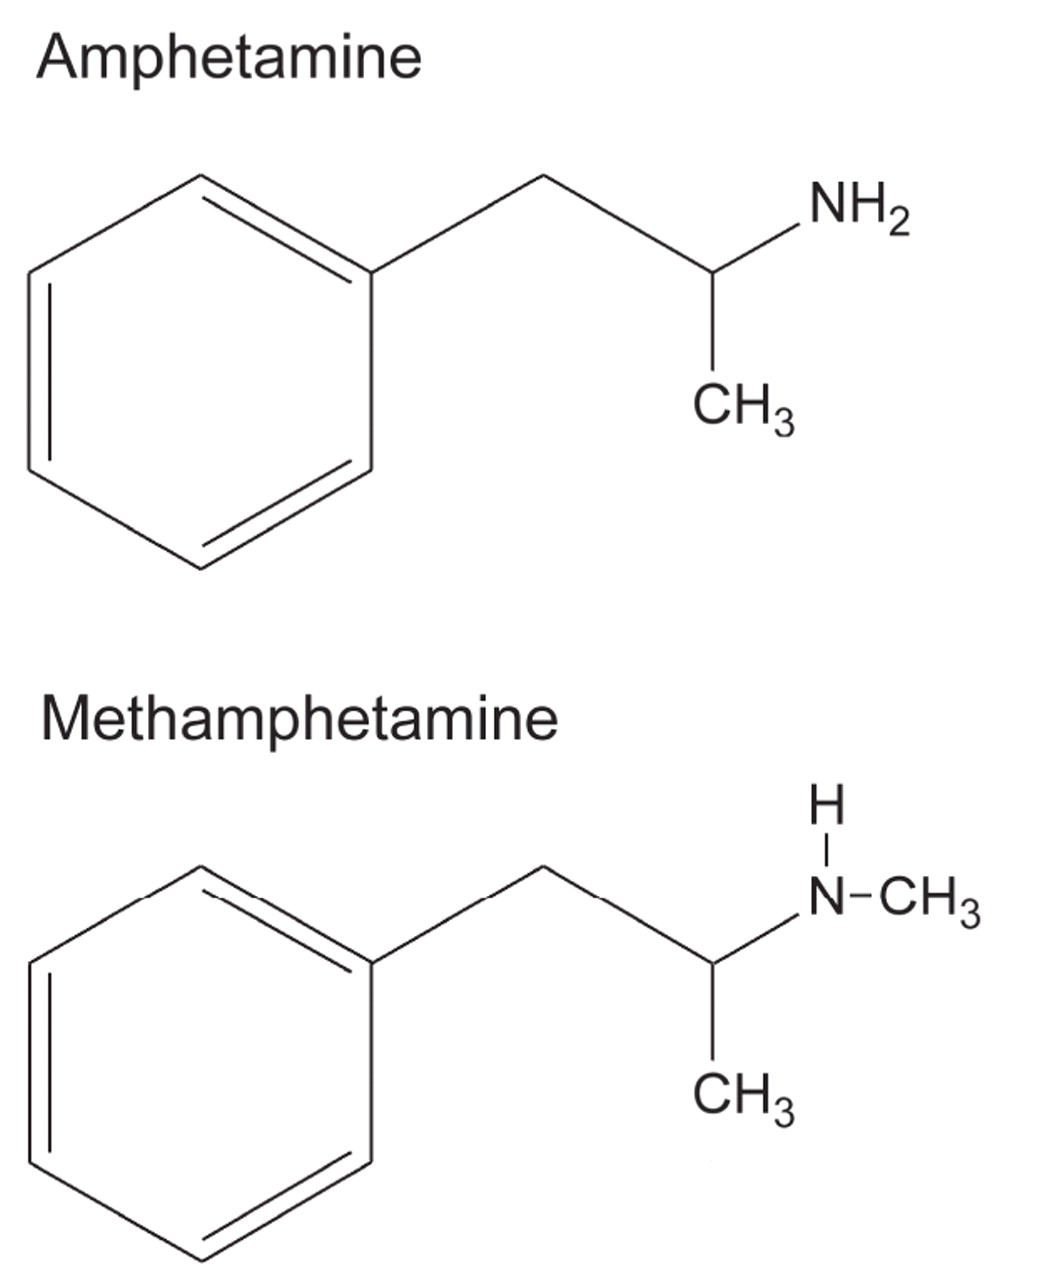 an analysis of the use of amphetamines and methamphetamines Know how long amphetamines and methamphetamines stay detectable in a standard amphetamine drug tests hair analysis tests are conducted using a small sample.